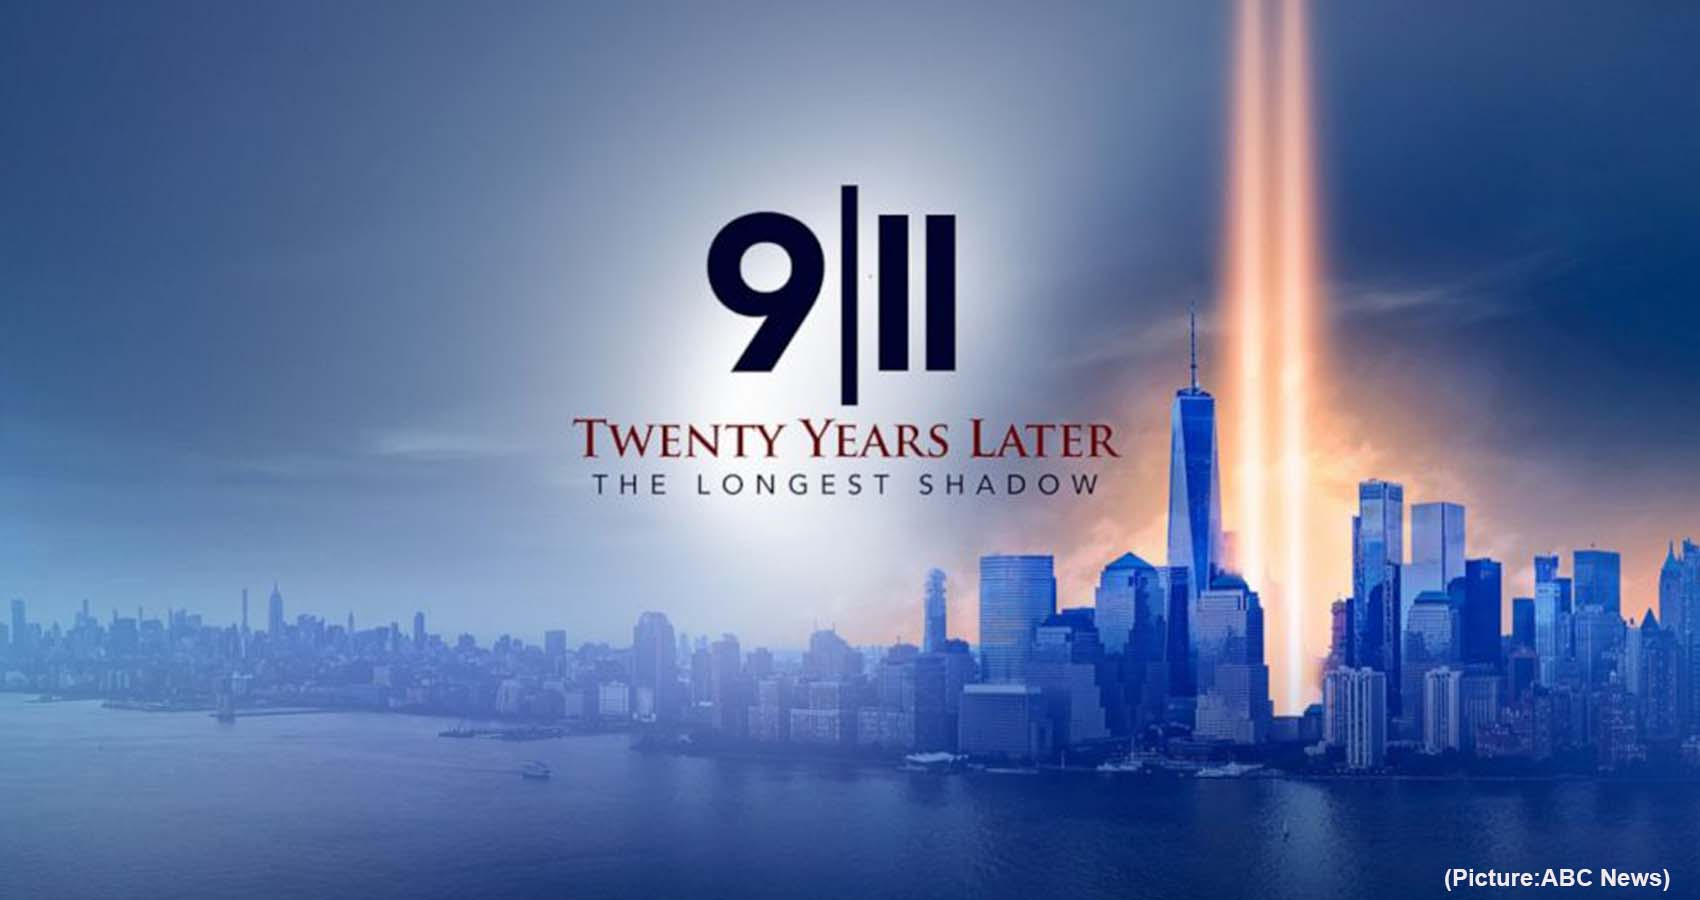 A Day To Reflect: 20 Years After The 9/11 Attacks